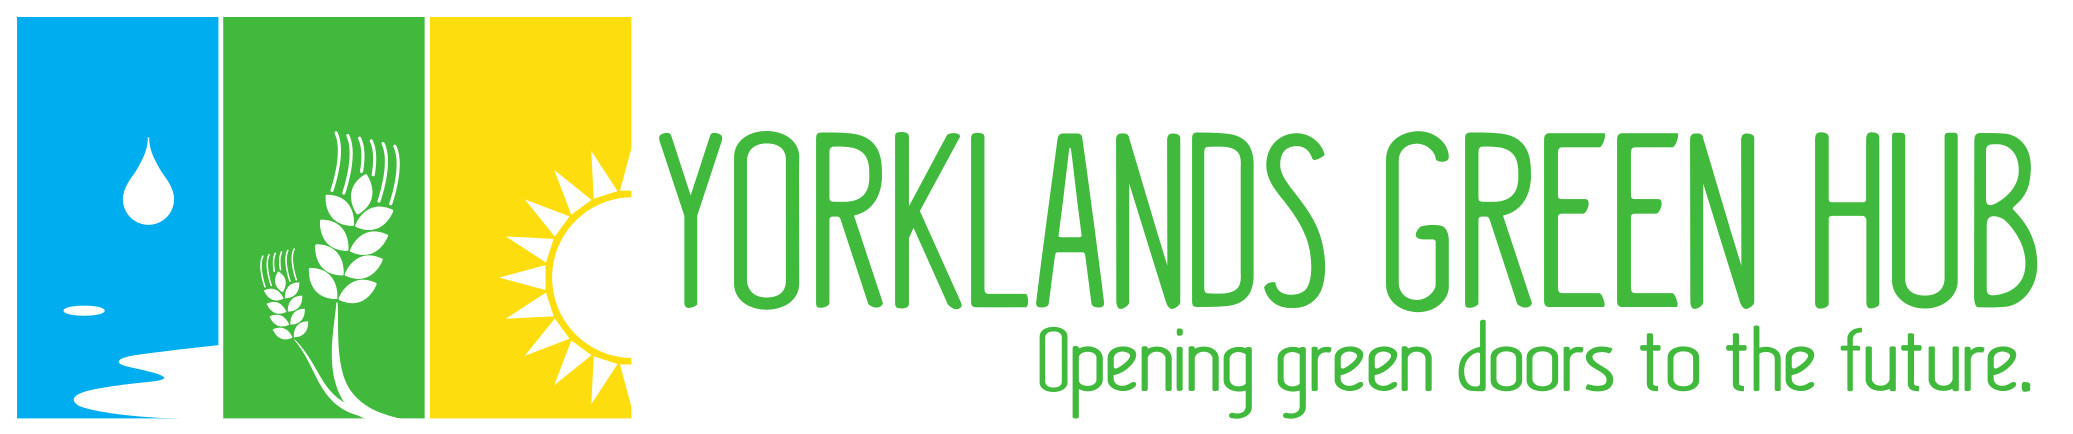 Yorklands Green Hub logo